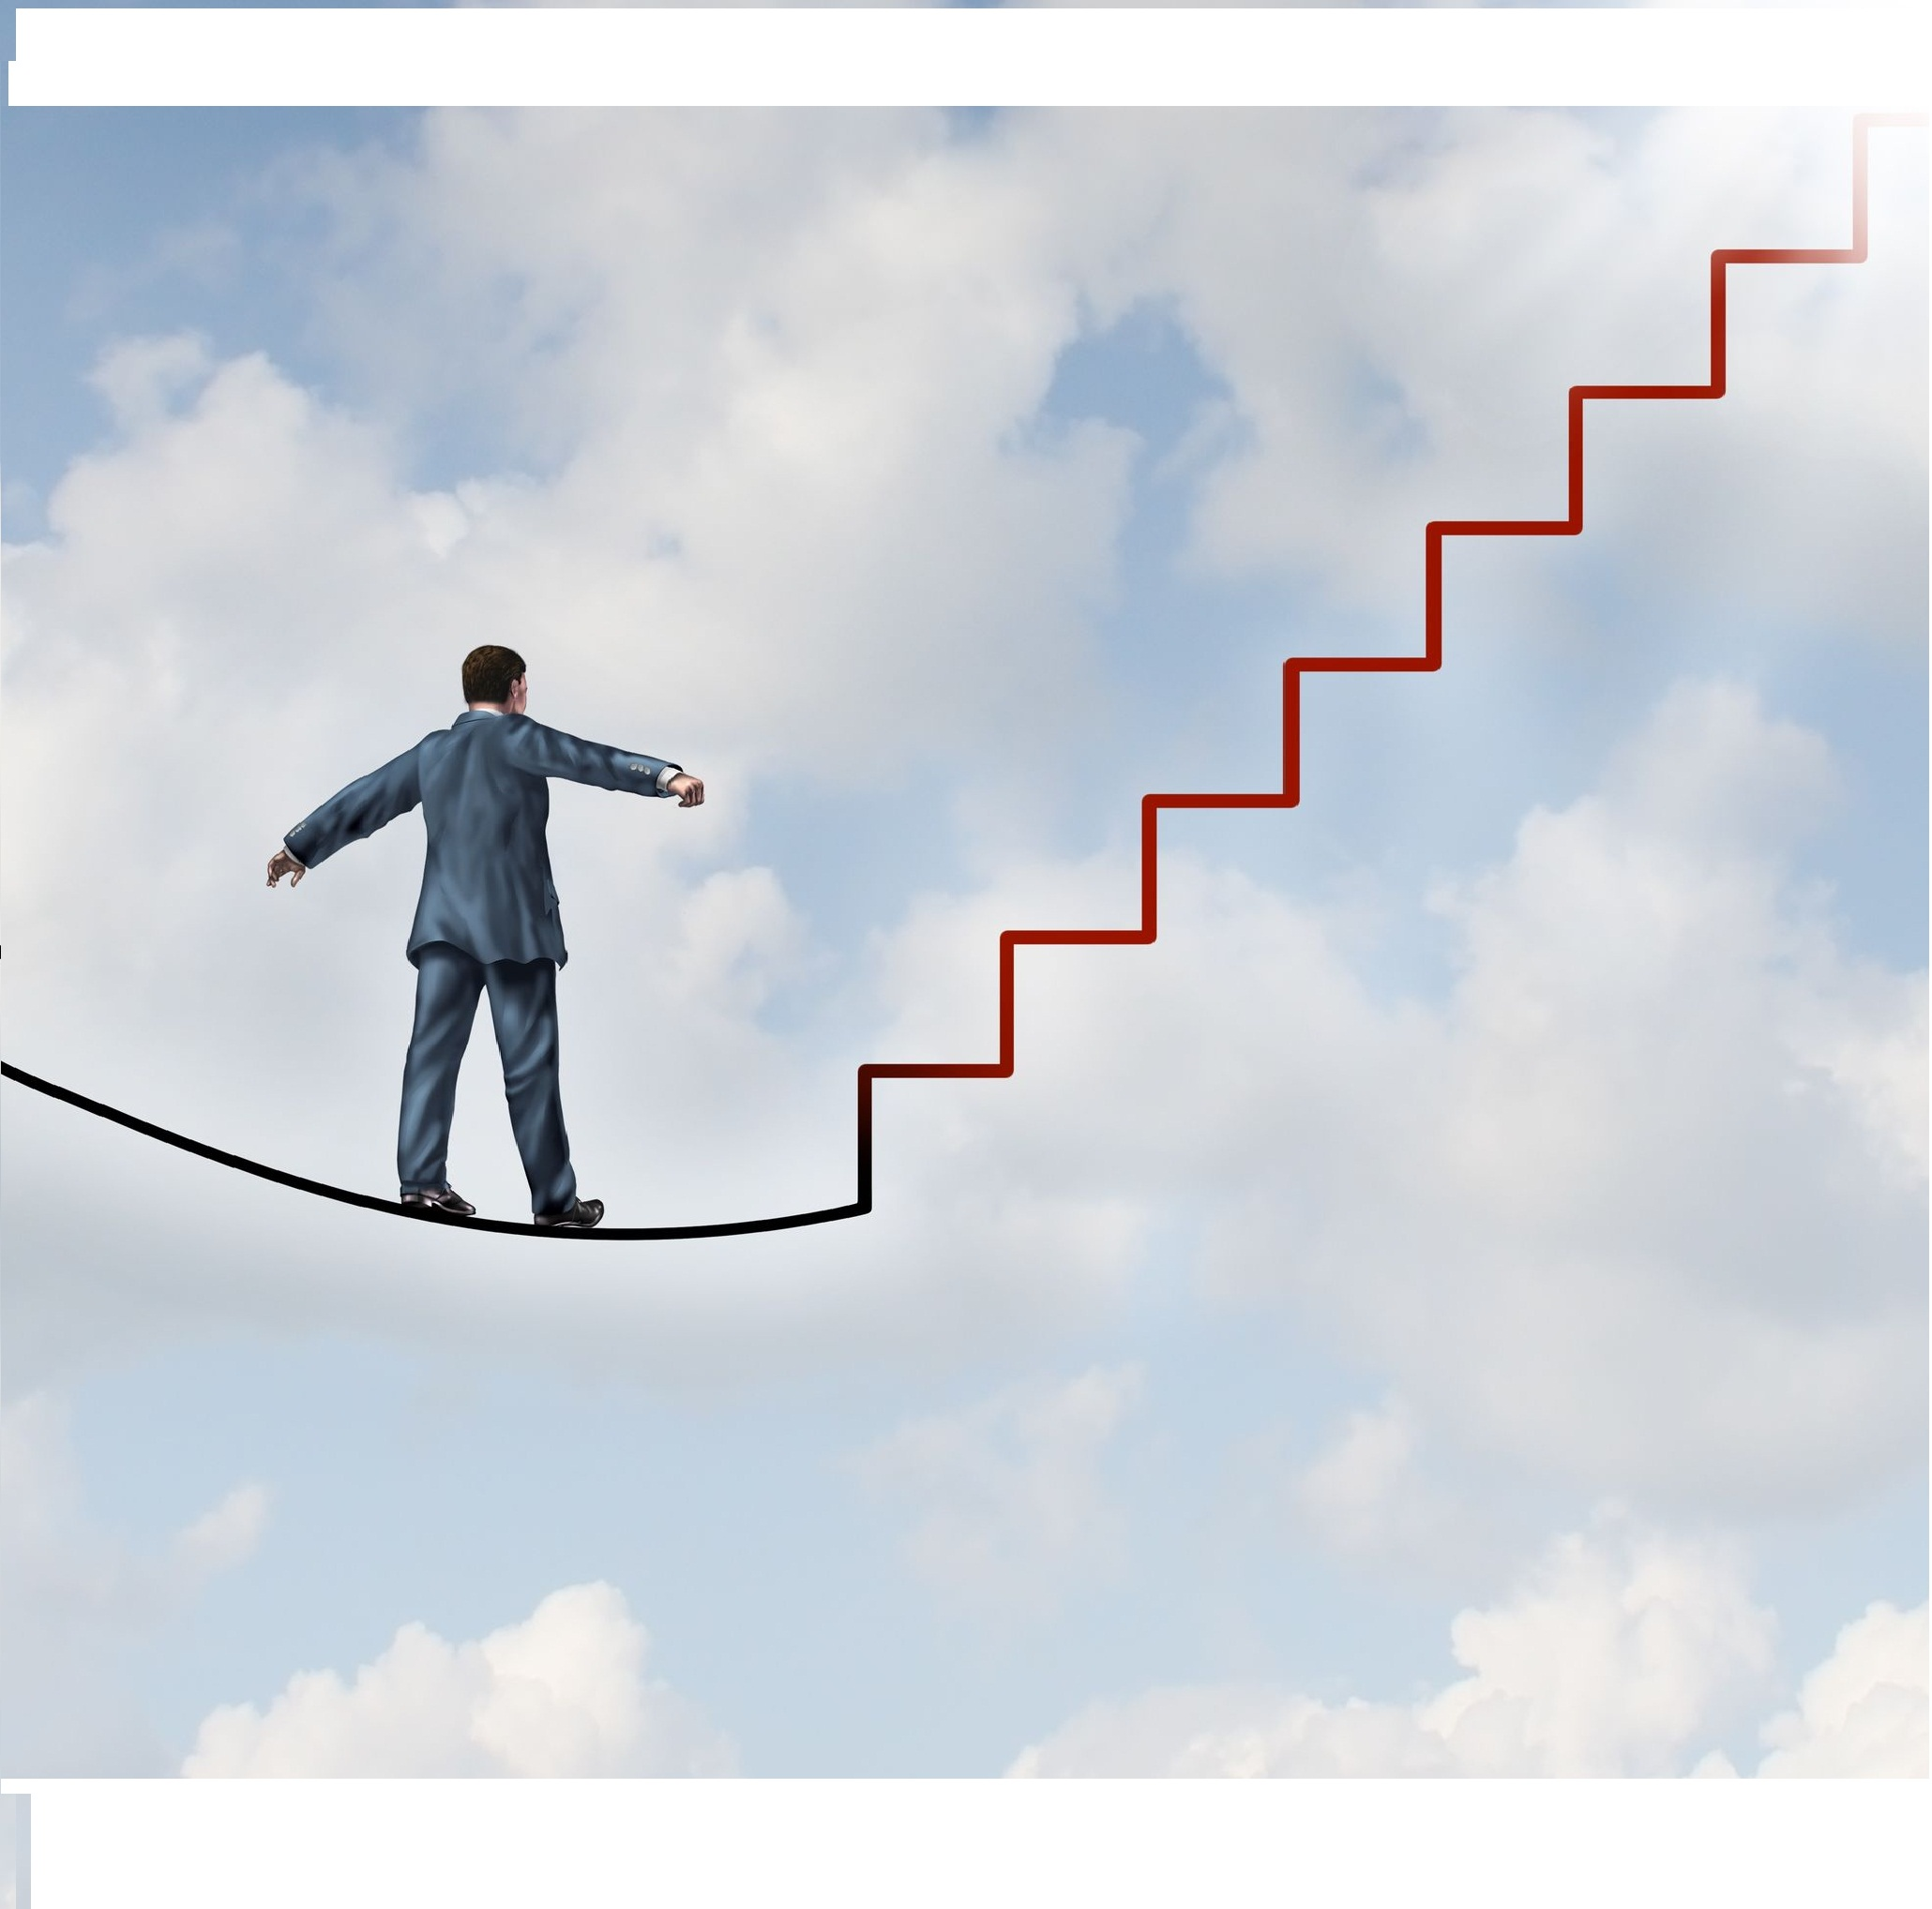 new leaders how to be confident and productive right from the the biggest step on the leadership journey is that first step from team member to team leader the first leadership gig is often the hardest new game